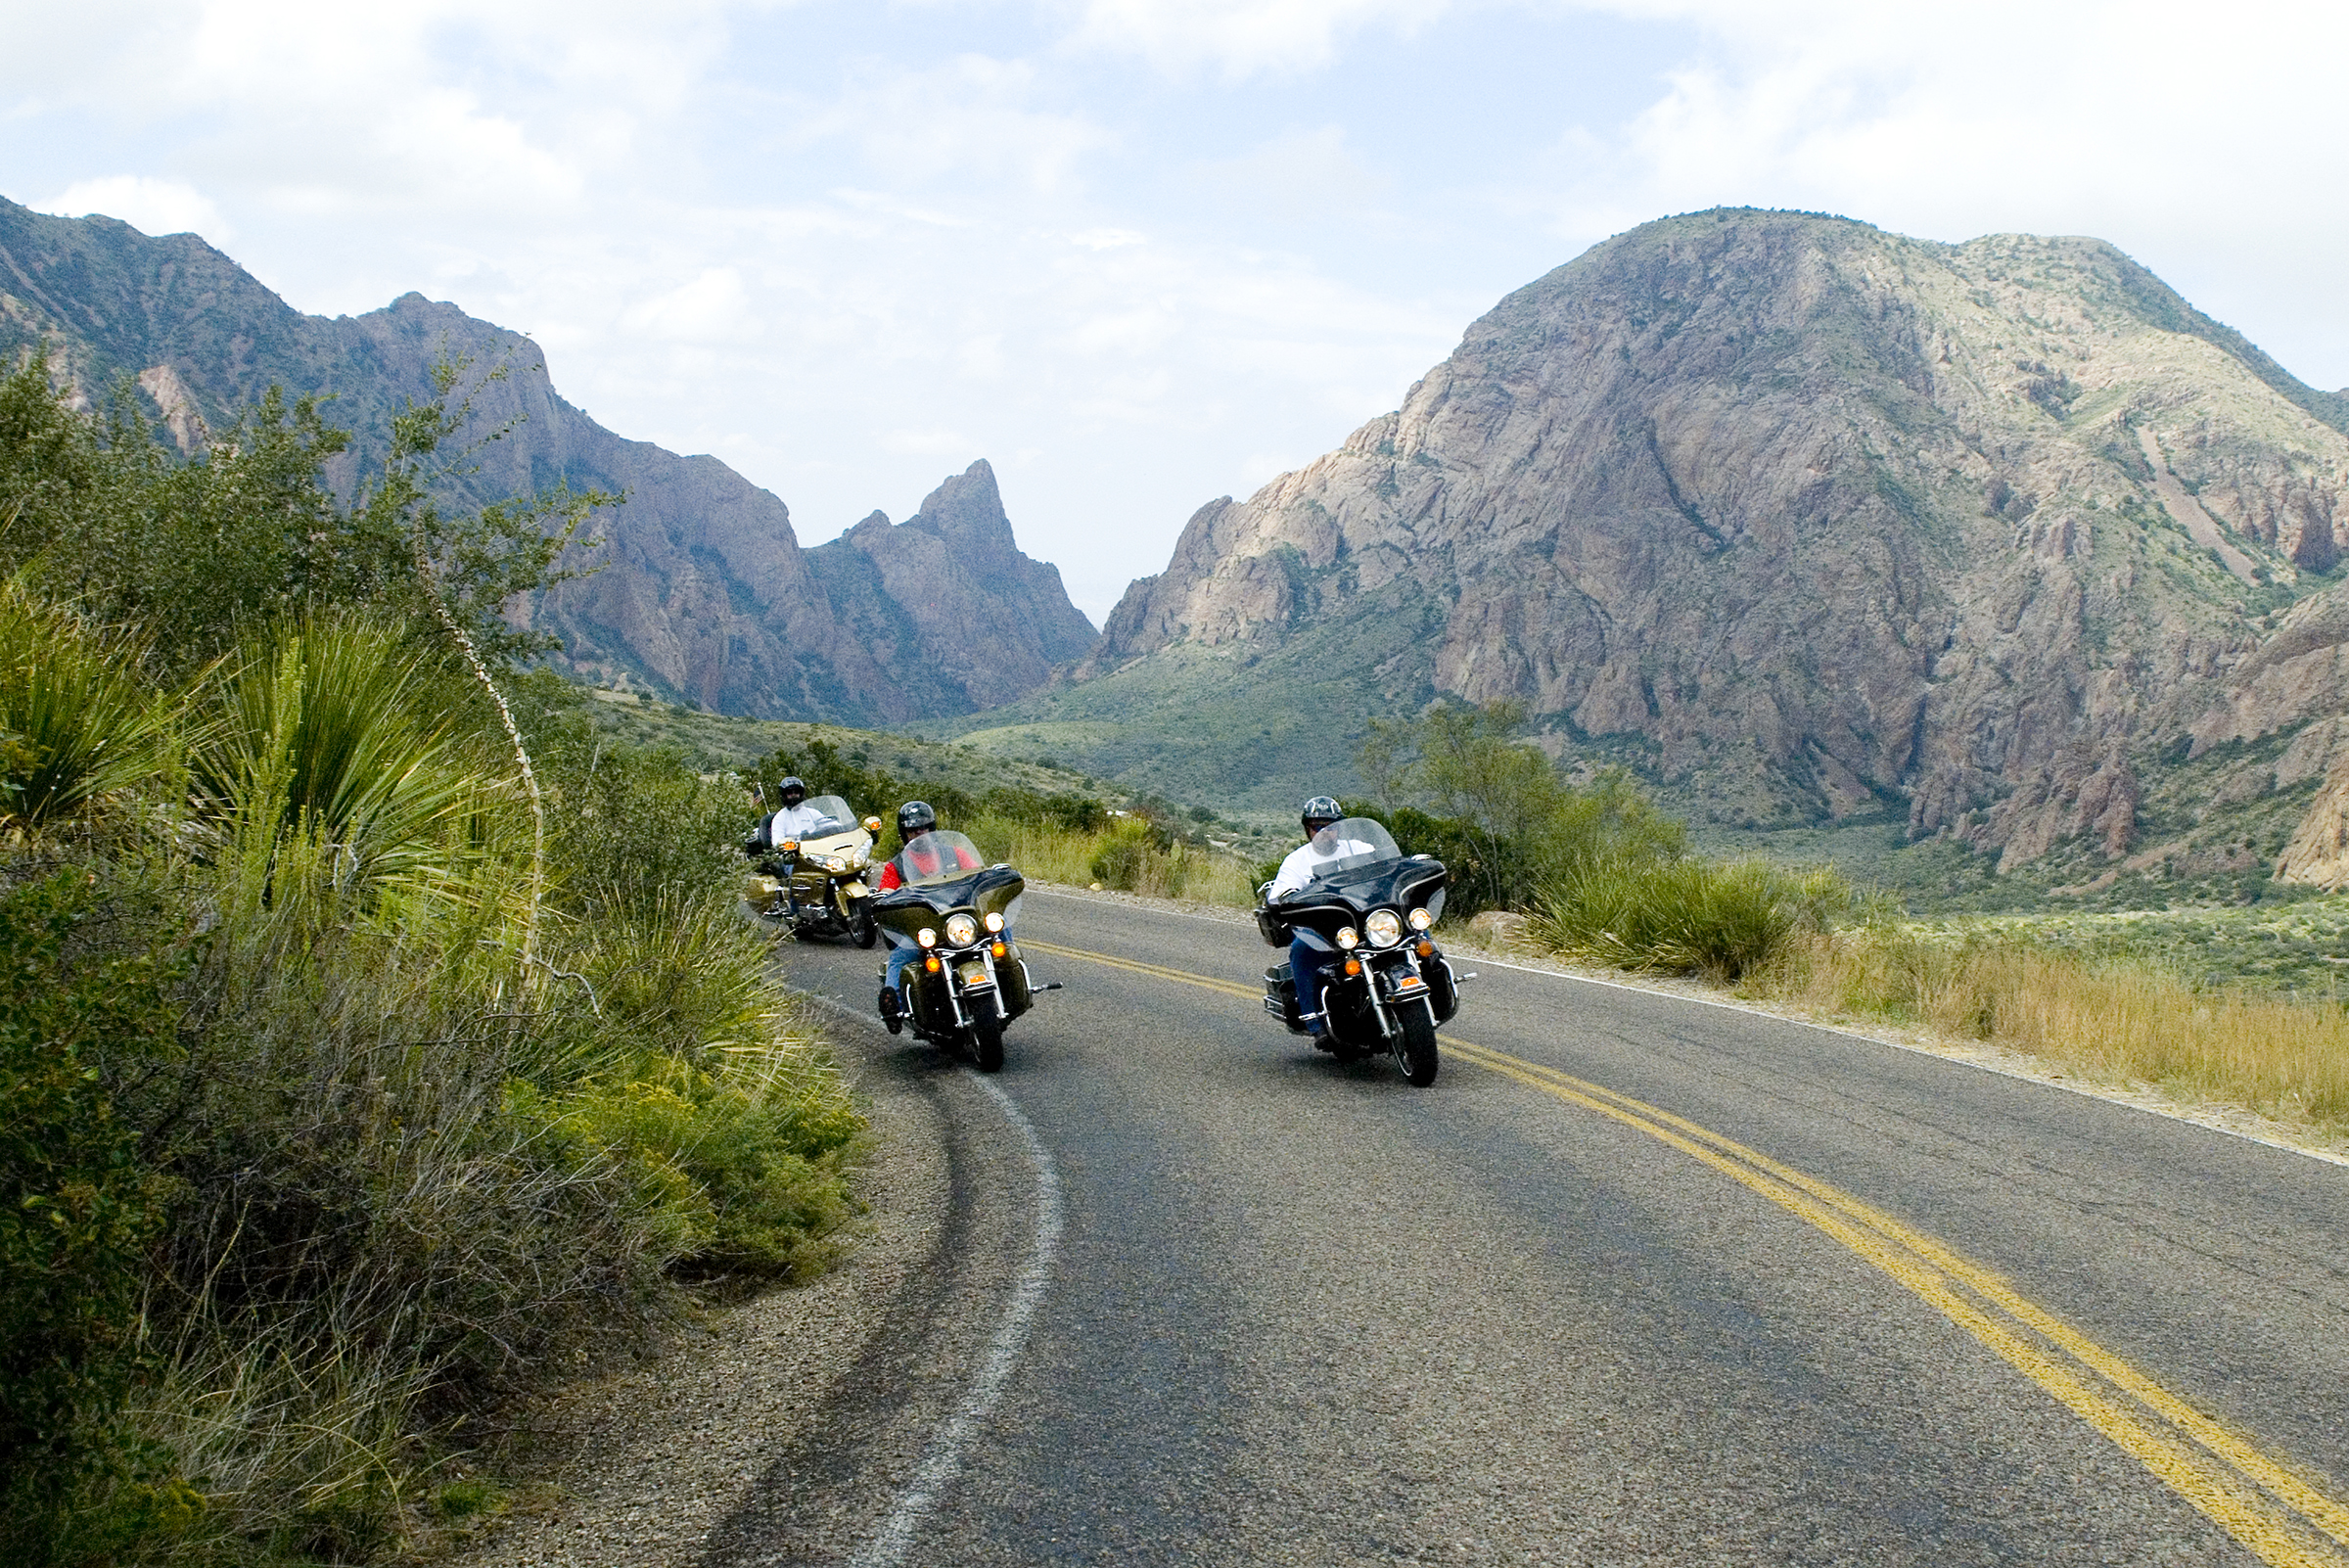 Motorcycles Visit Big Bend Guides For The Big Bend